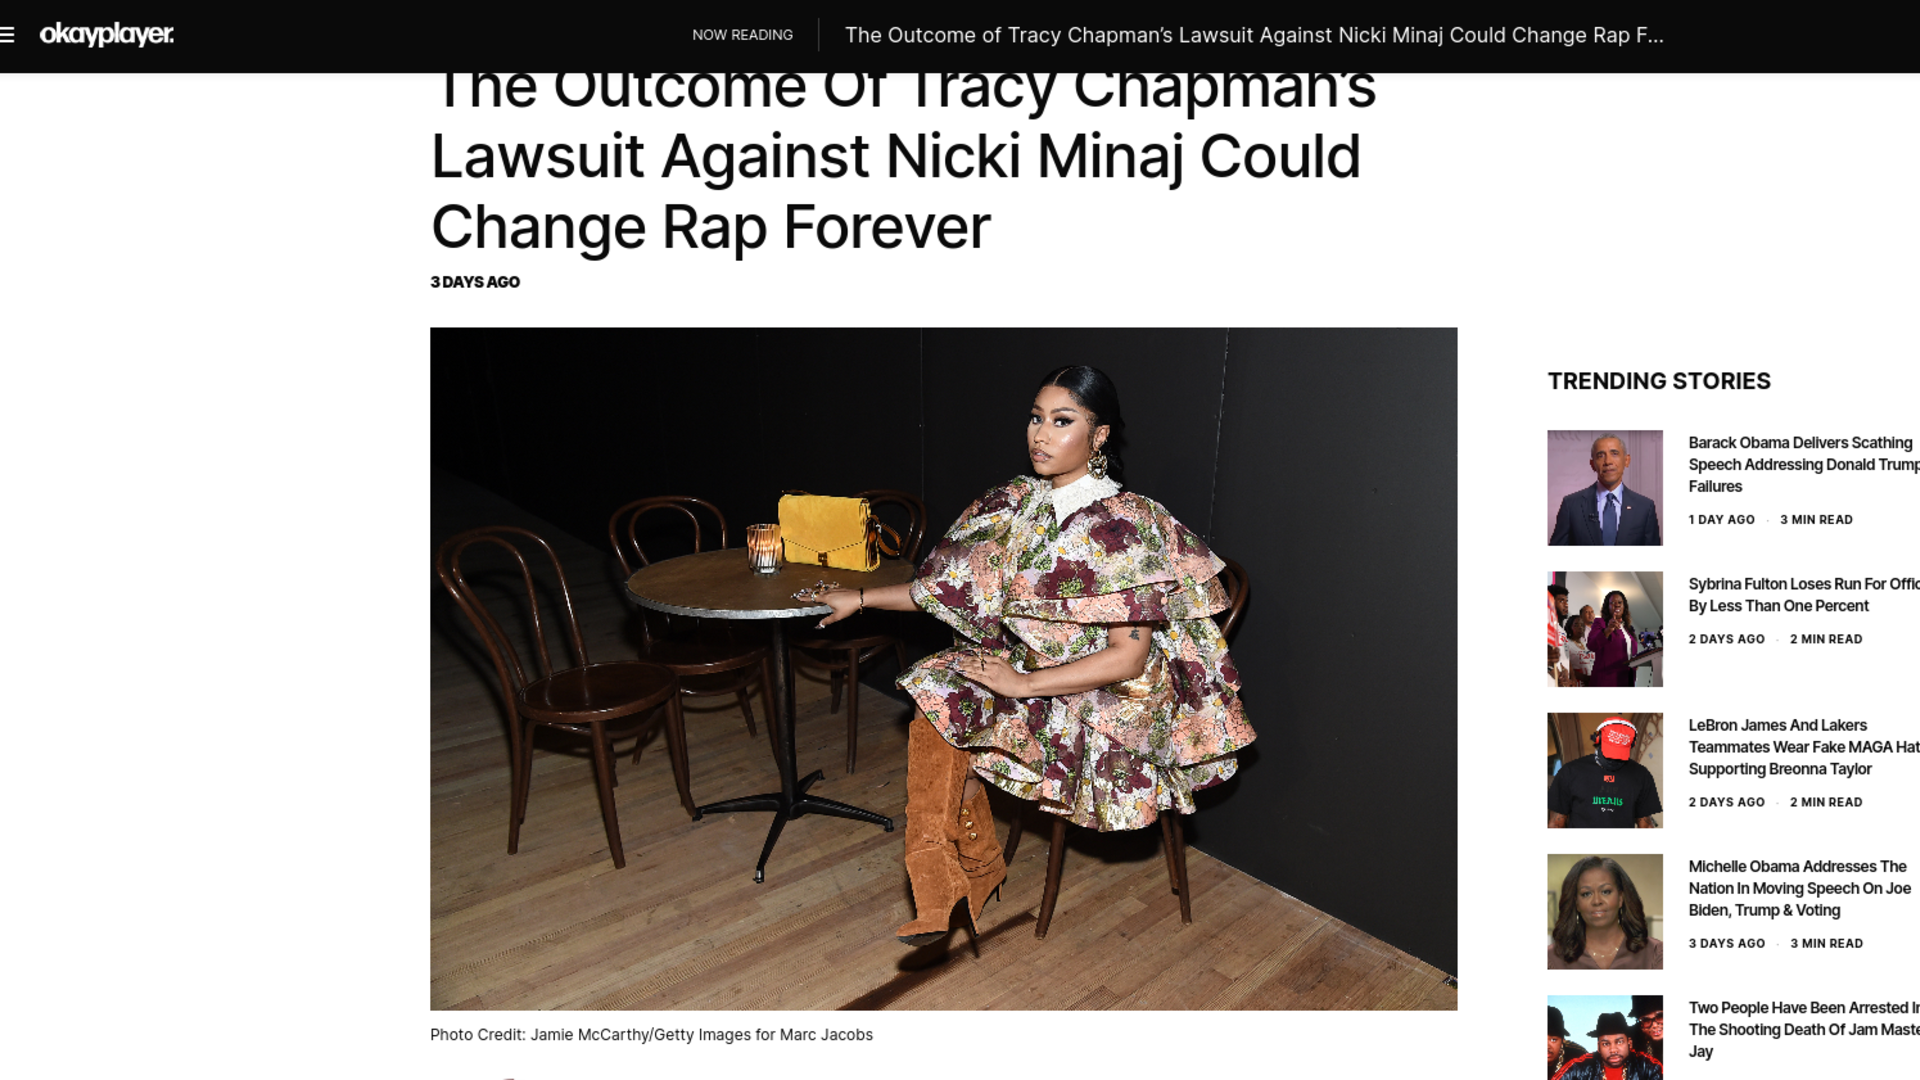 Fairness Rocks News The Outcome of Tracy Chapman's Lawsuit Against Nicki Minaj Could Change Rap Forever